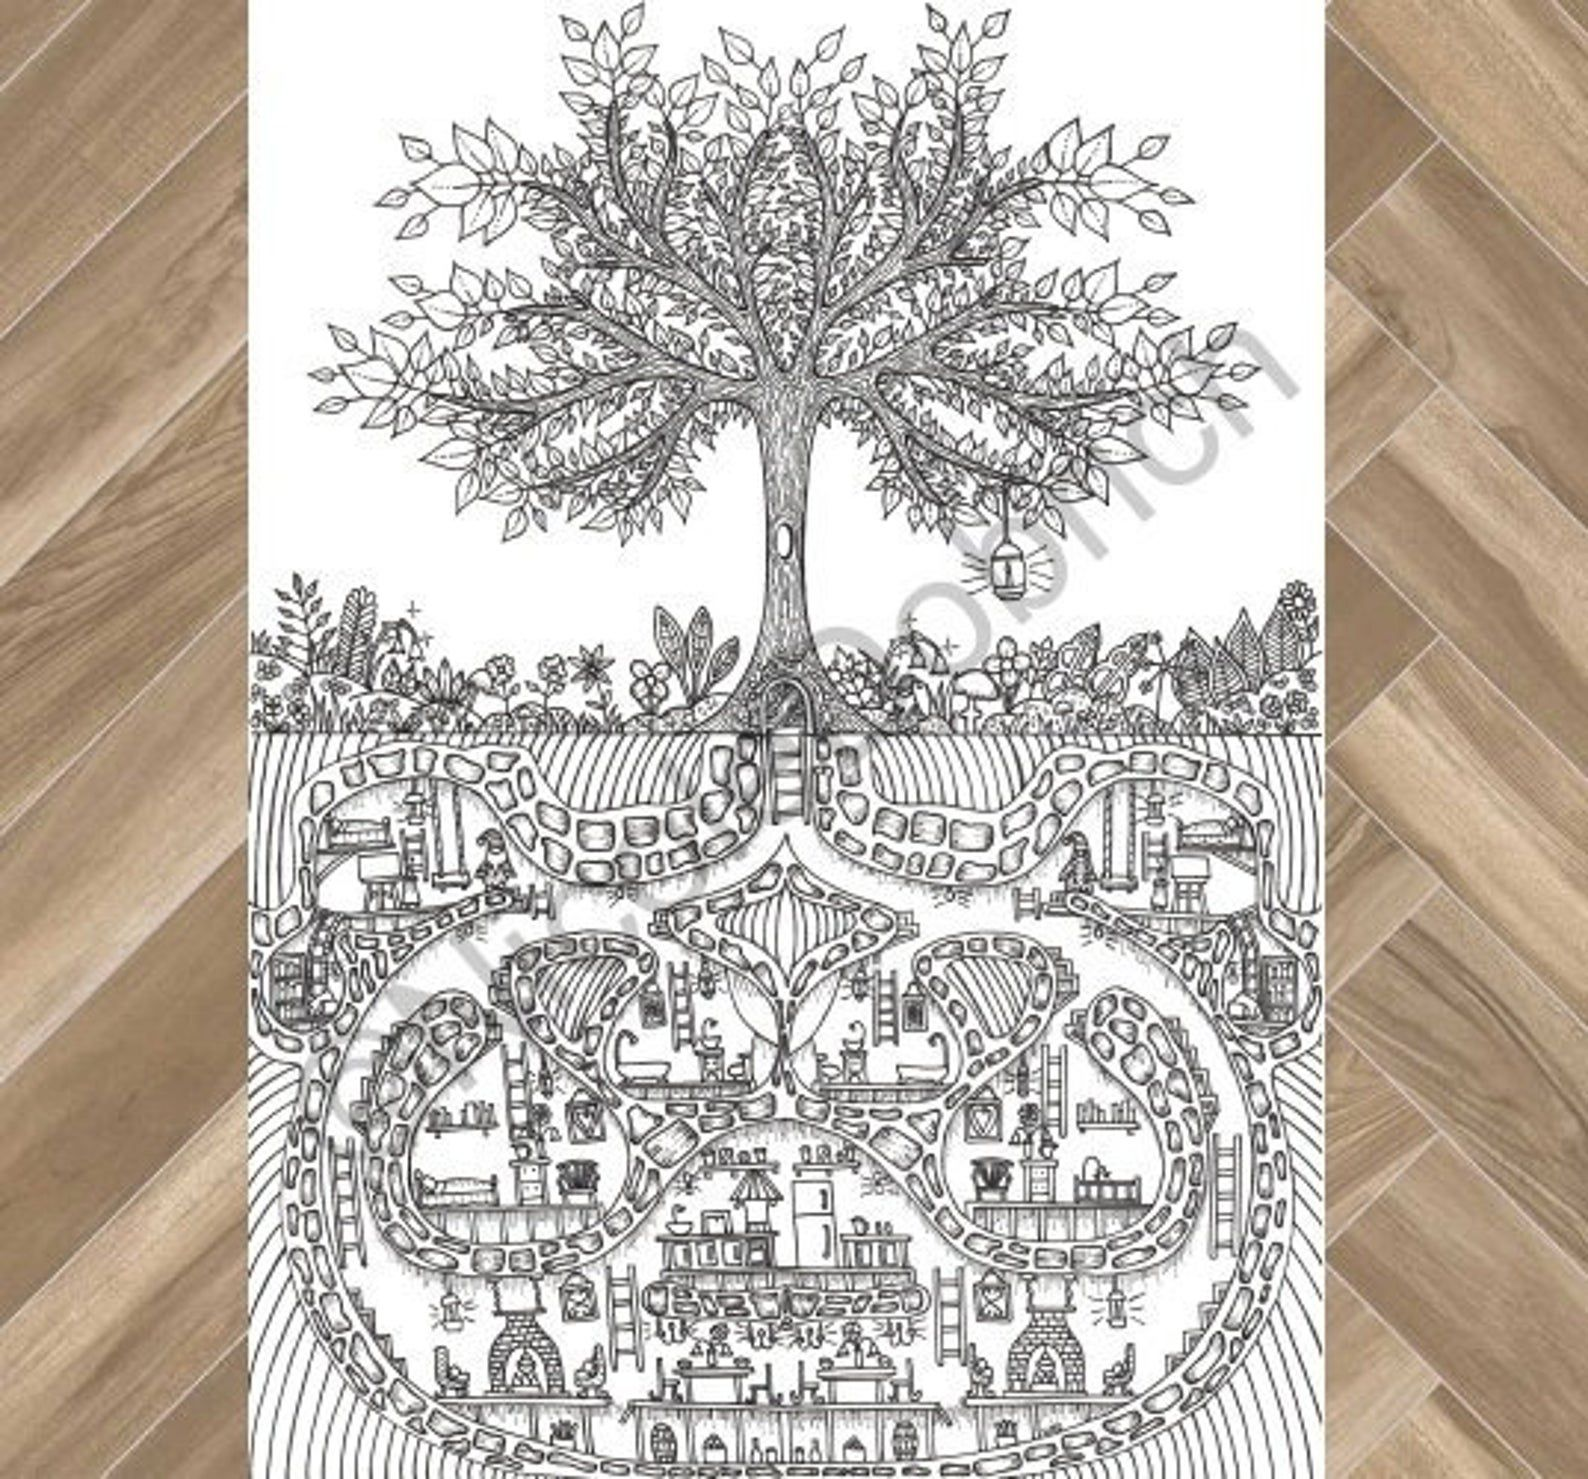 coloring book design of a tree with an underground gnome house beneath it